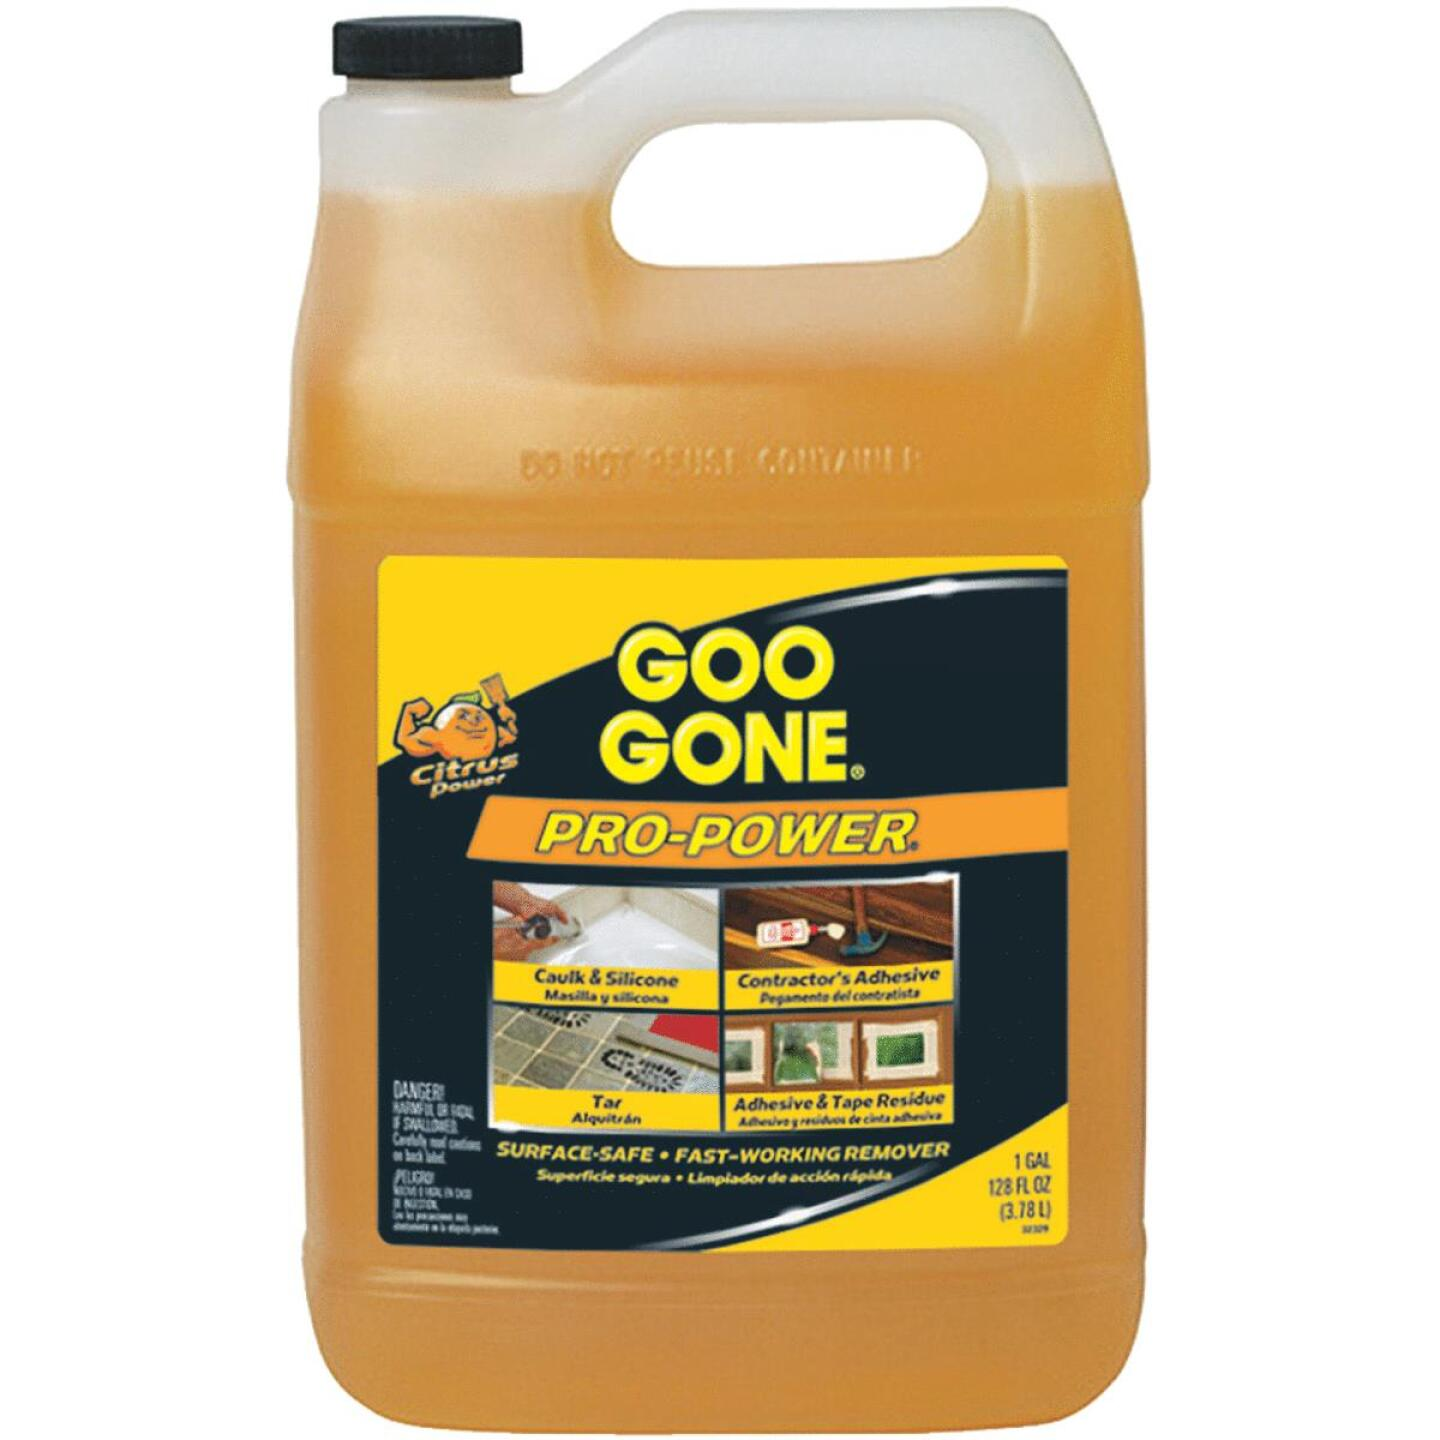 Goo Gone 1 Gal. Pro-Power Adhesive Remover Image 289